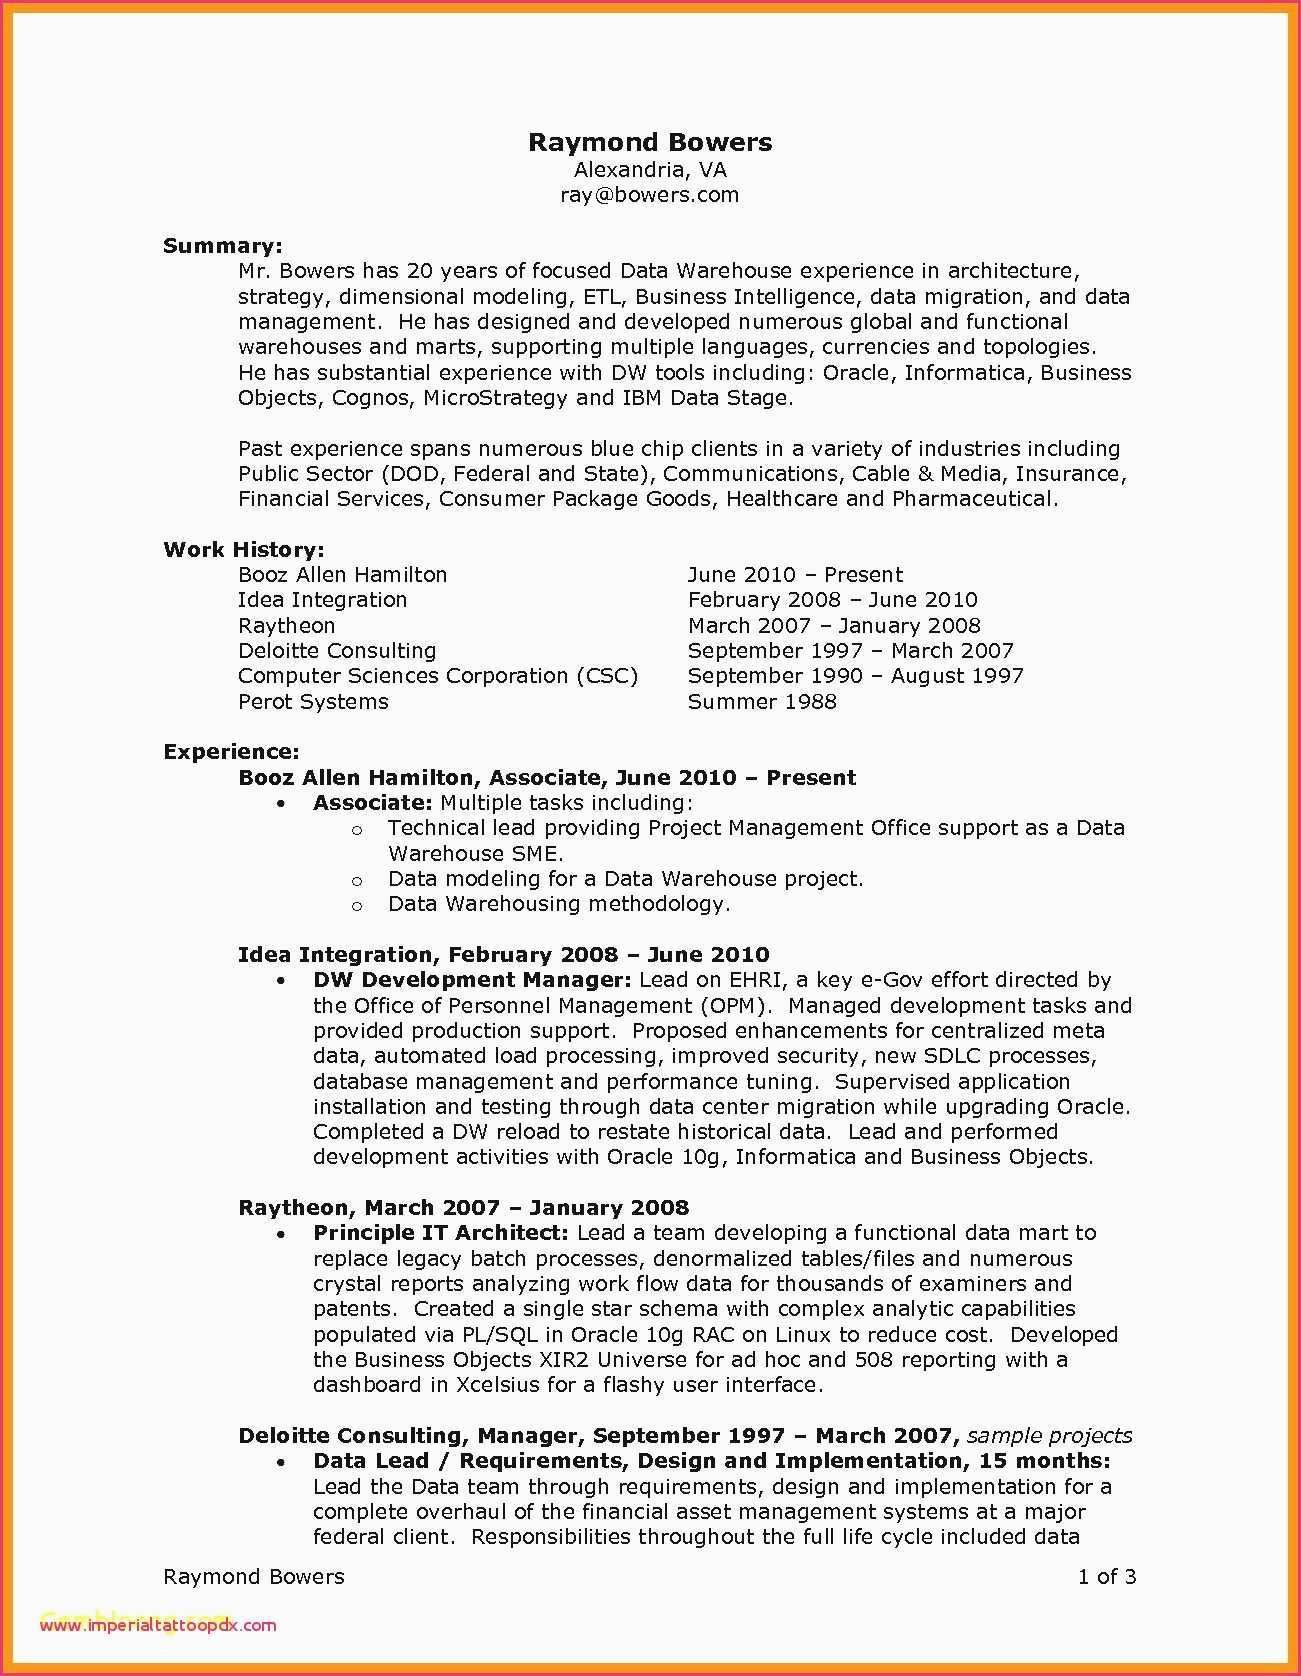 cool image of tourism management resume examples mission statement job sample objective Resume Sample Resume Objective For Tourism Students